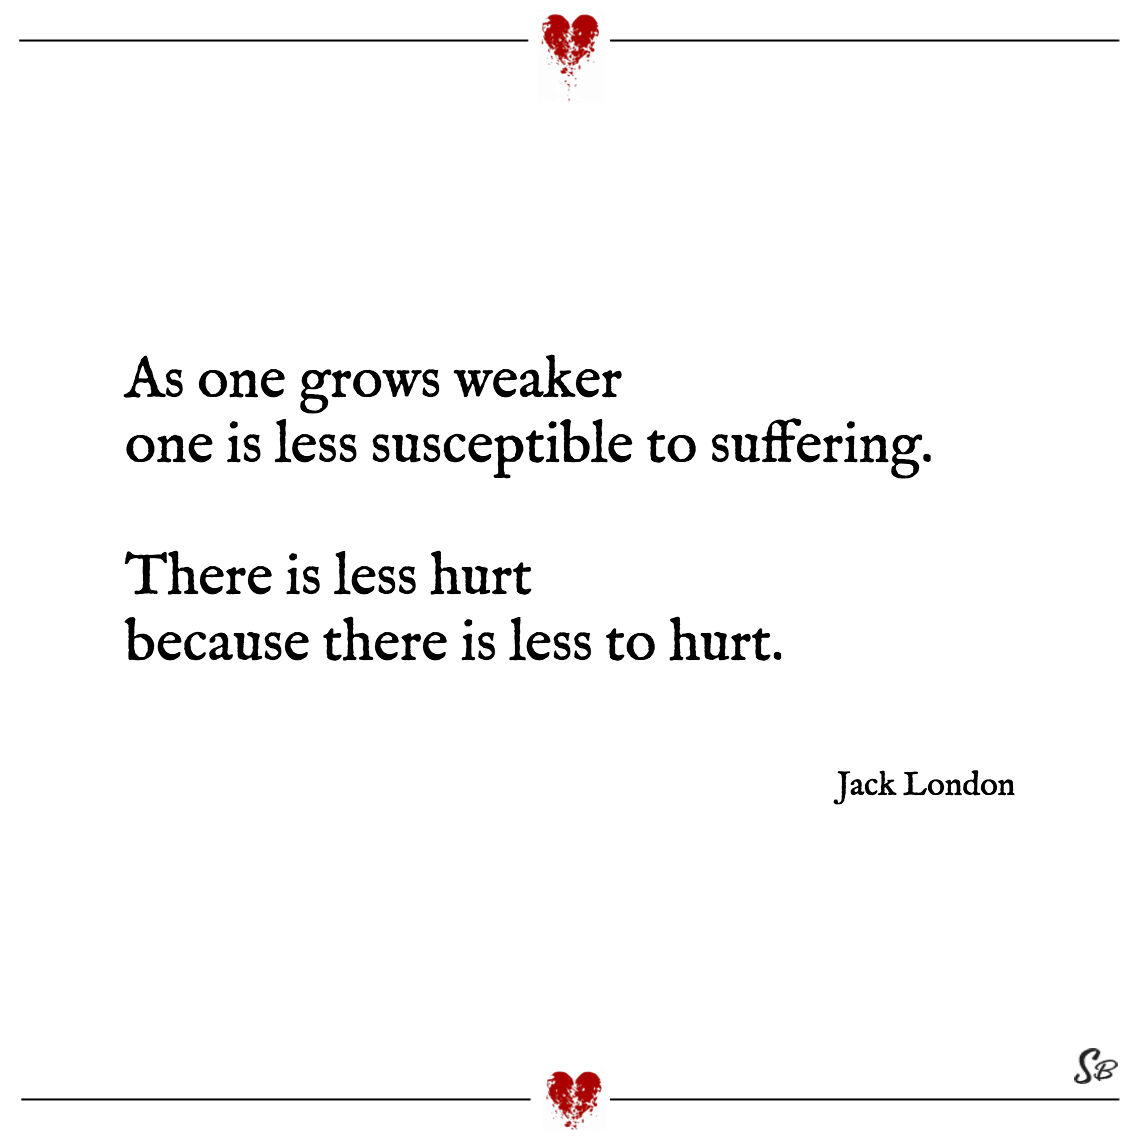 As one grows weaker one is less susceptible to suffering. there is less hurt because there is less to hurt. jack london